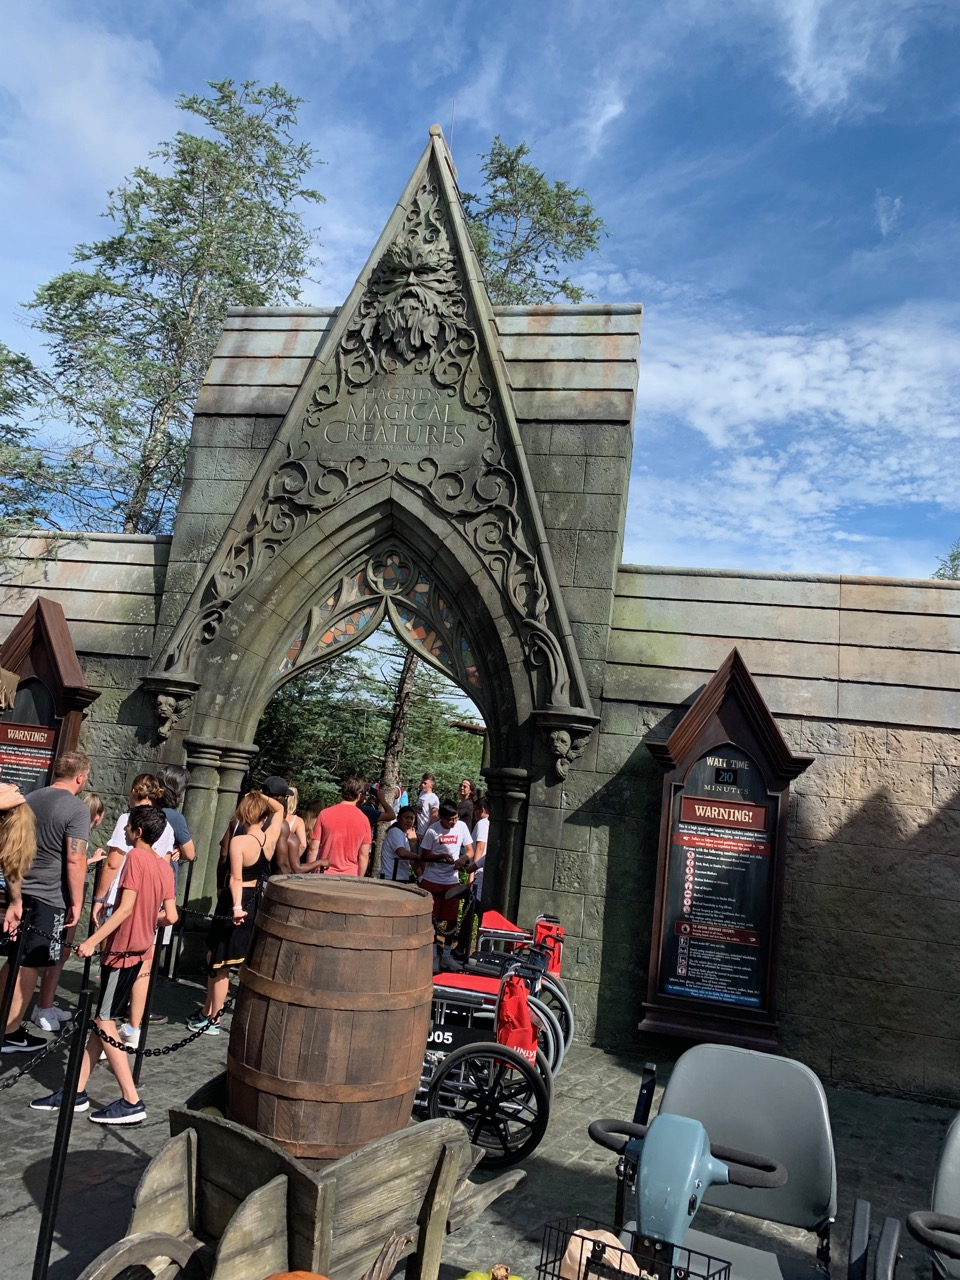 Hagrid's Does Not Use Express Pass! Arrive Early For It!